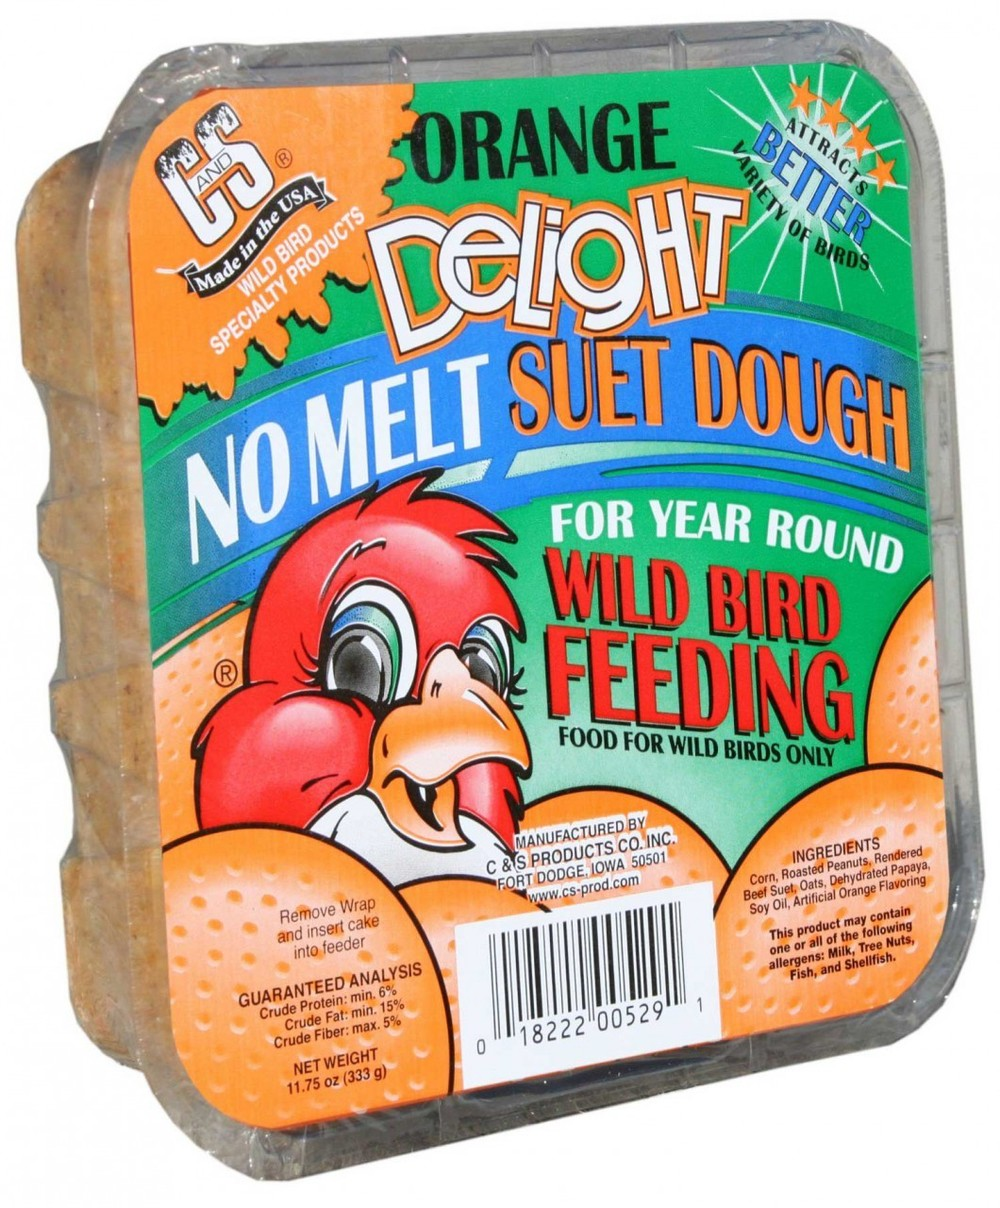 C and S Delight Orange No Melt Suet Dough